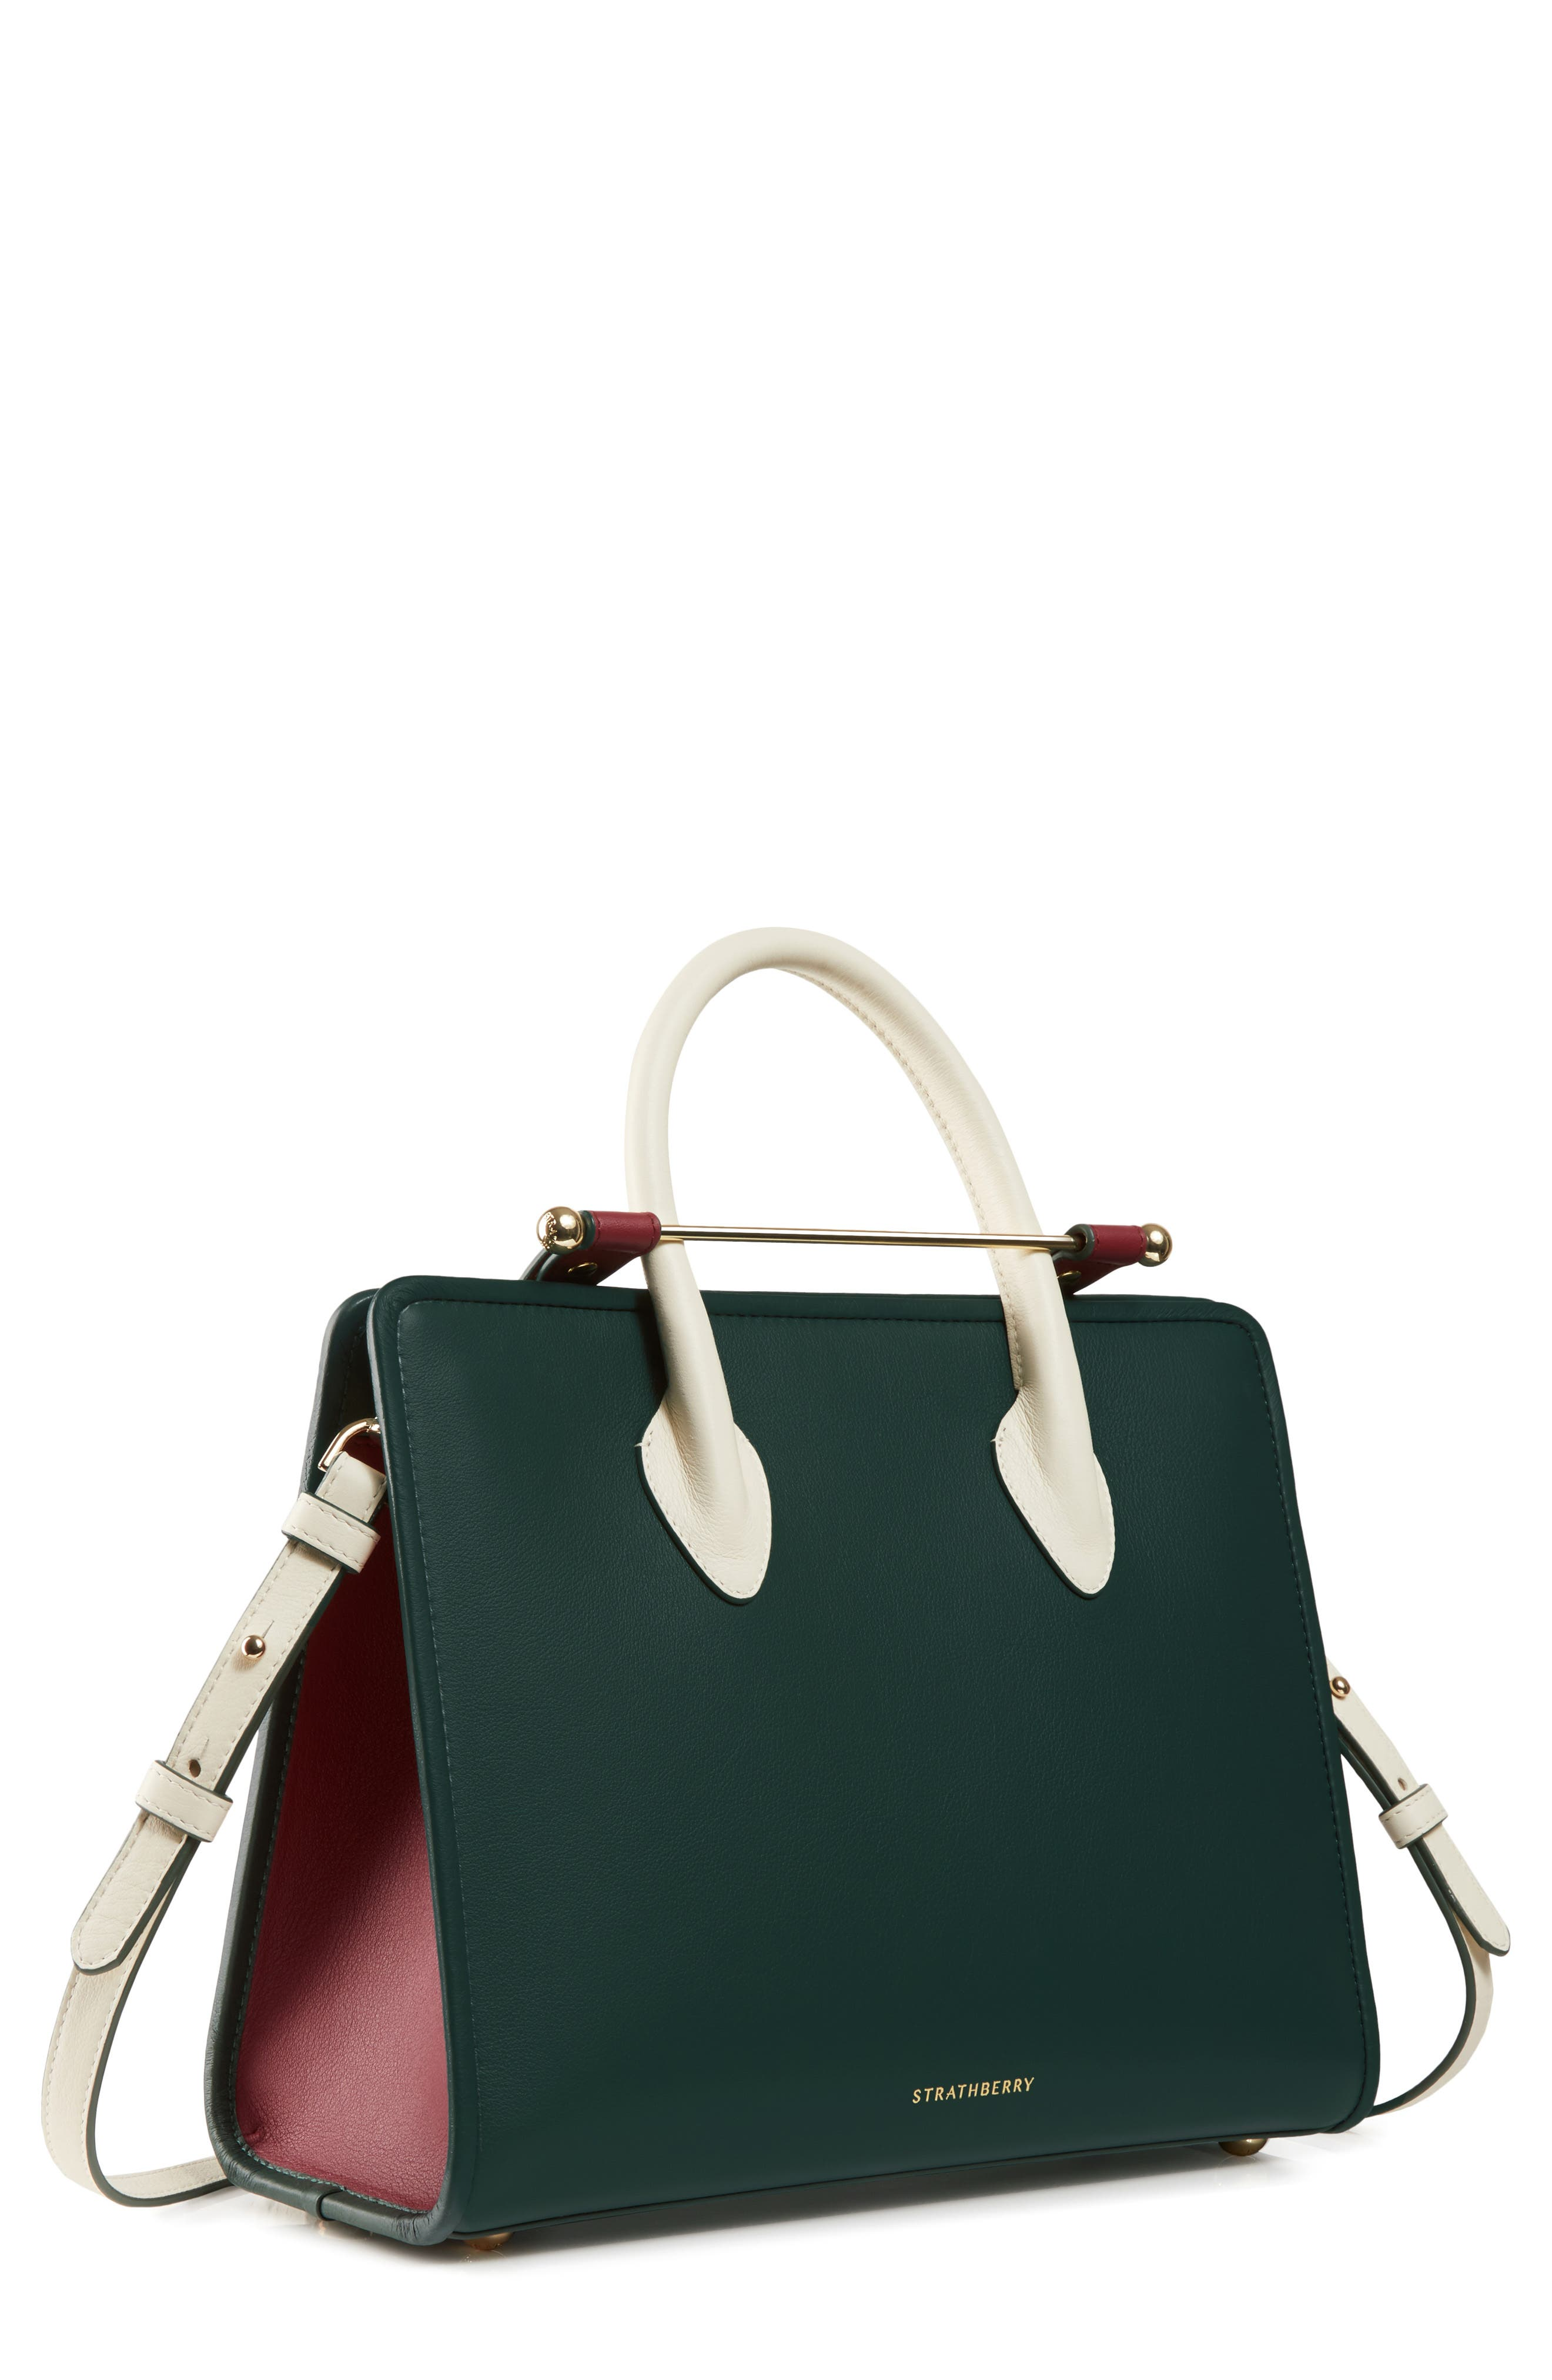 STRATHBERRY Midi Leather Tote, Main, color, BOTTLE GREEN/ EMBER/ VANILLA